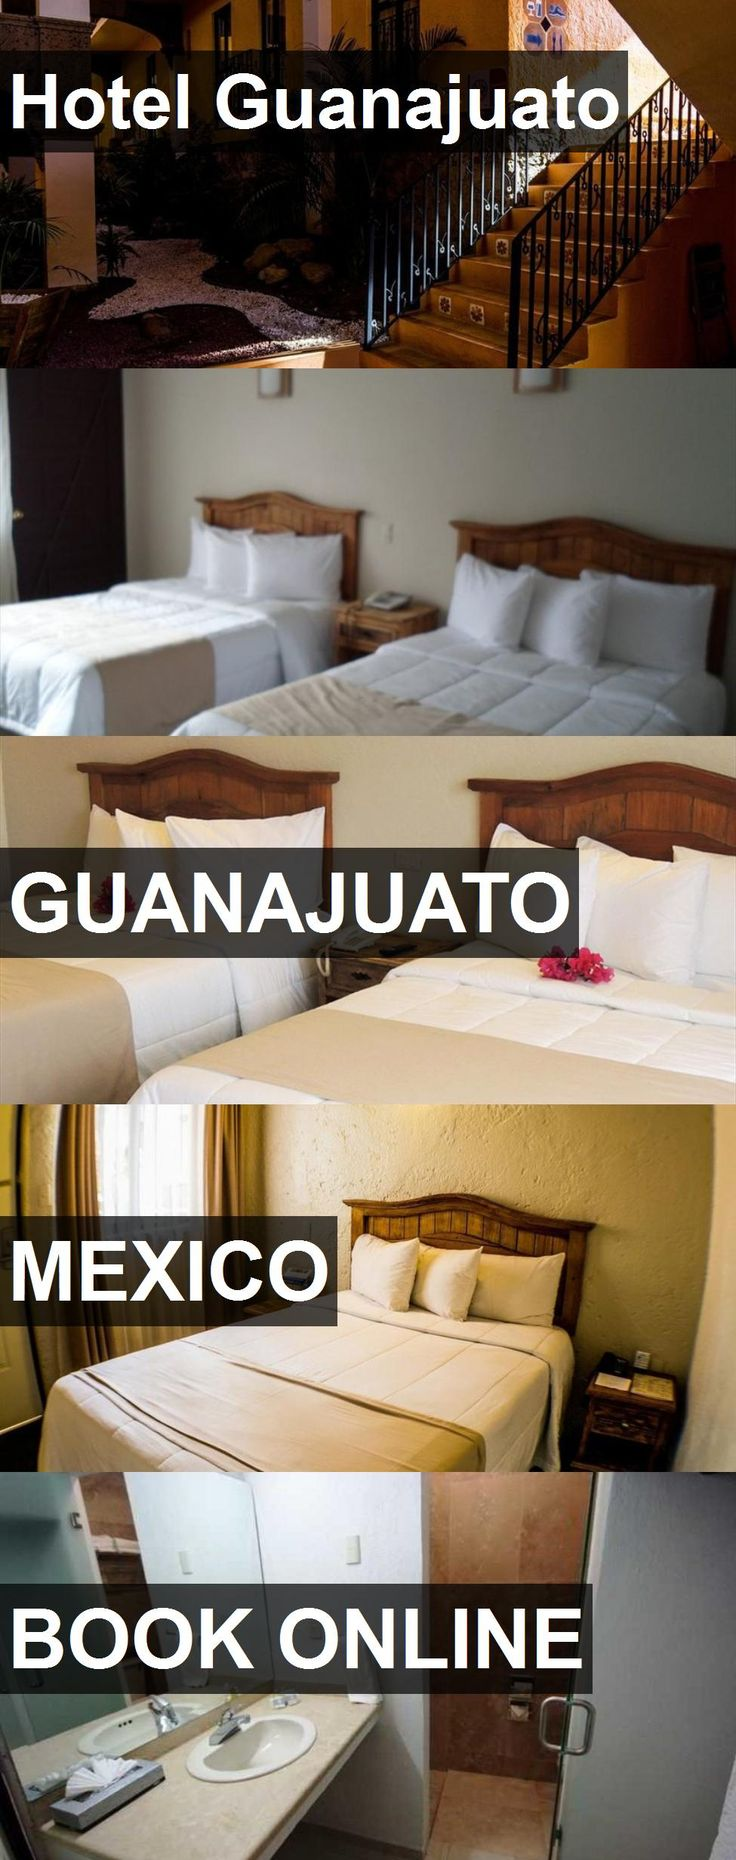 Hotel Guanajuato in Guanajuato, Mexico. For more information, photos, reviews and best prices please follow the link. #Mexico #Guanajuato #travel #vacation #hotel